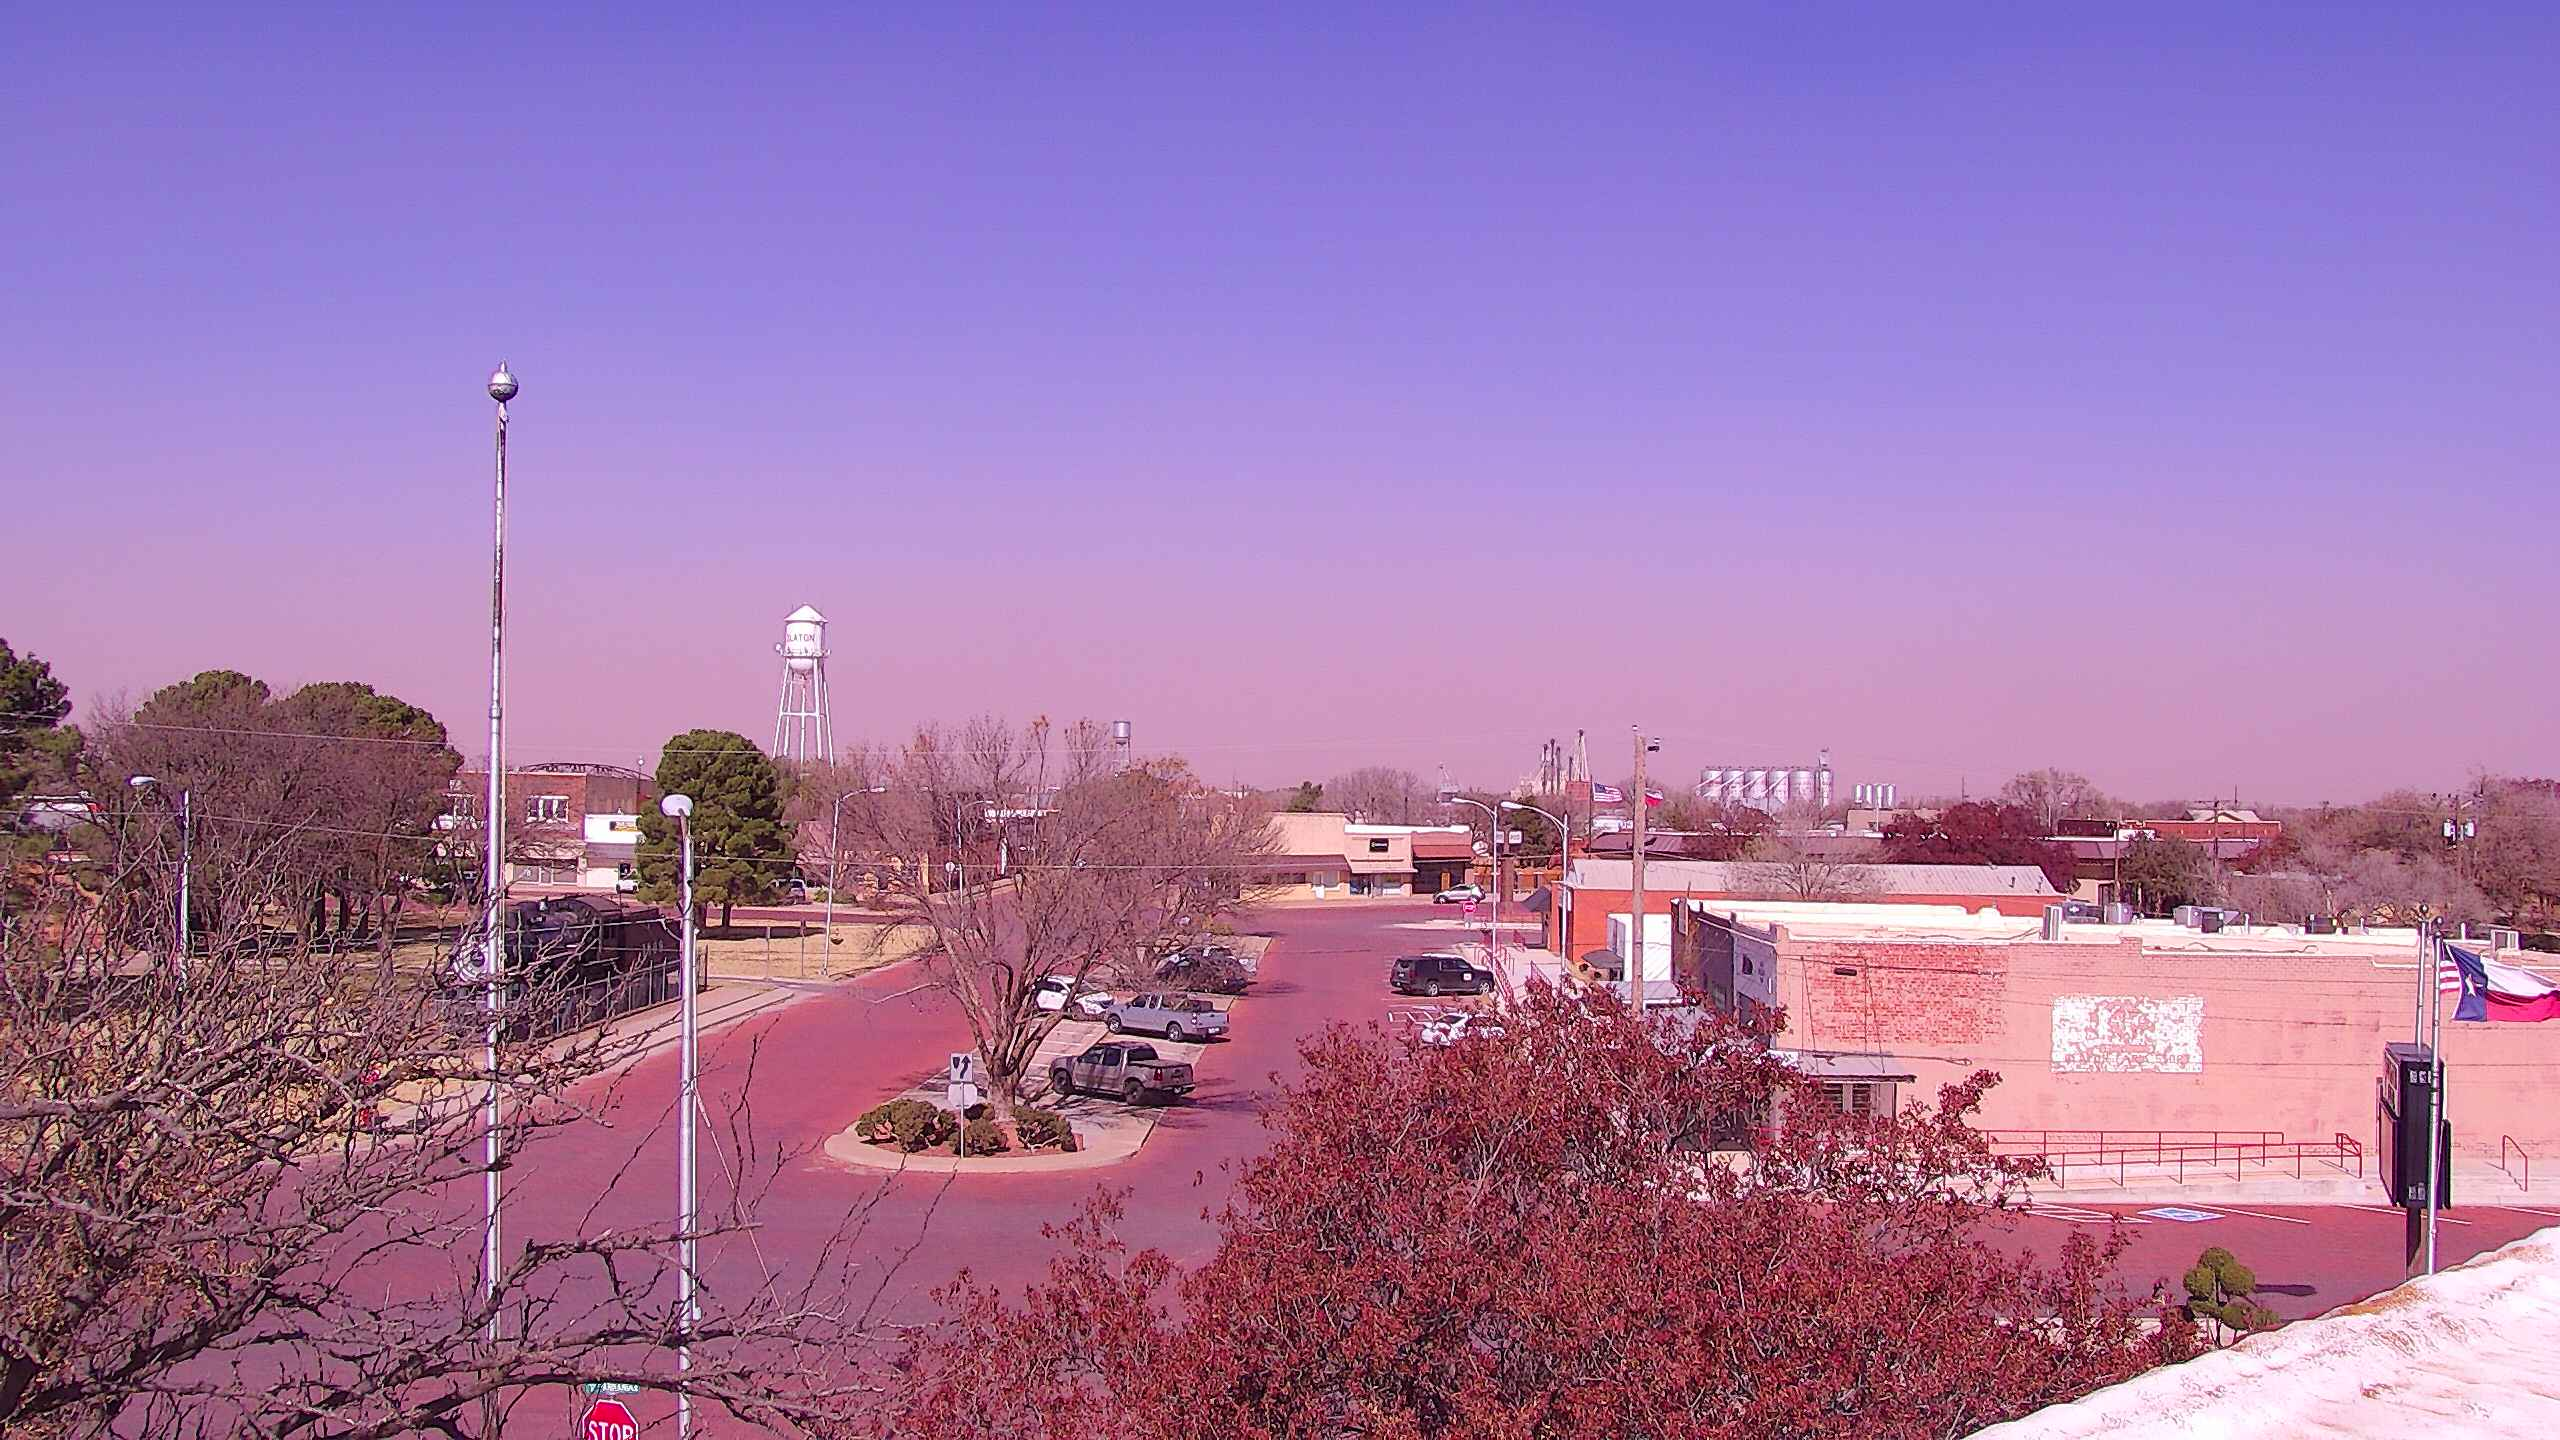 A dusty hue on the skyline in Slaton around noon on Saturday (14 November 2020). The image is courtesy of KAMC.